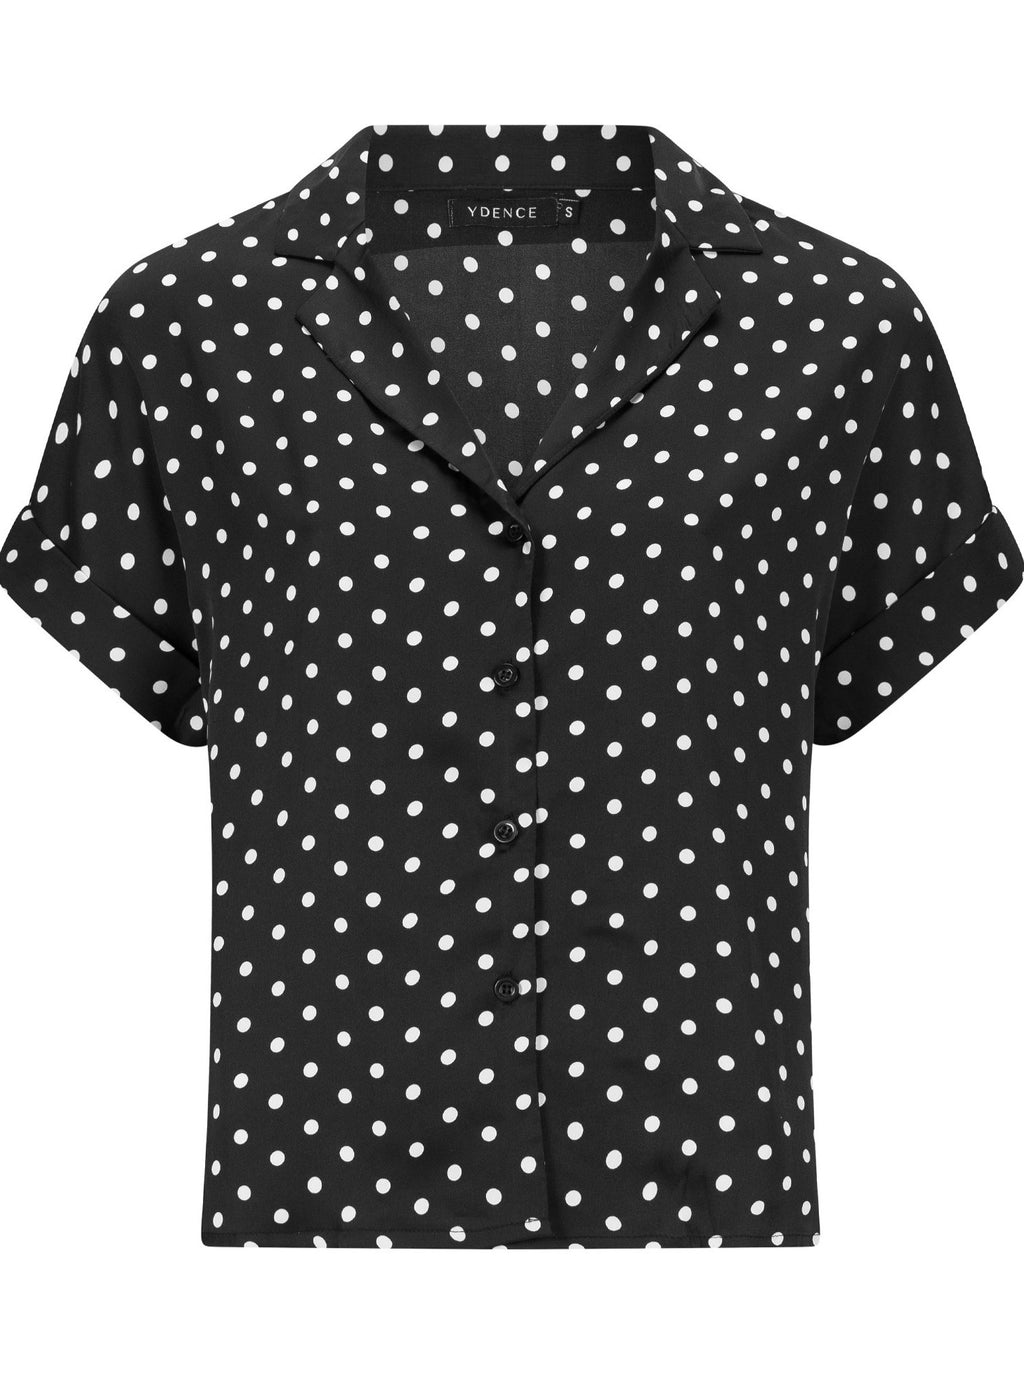 The Trani Shirt - Black Dots